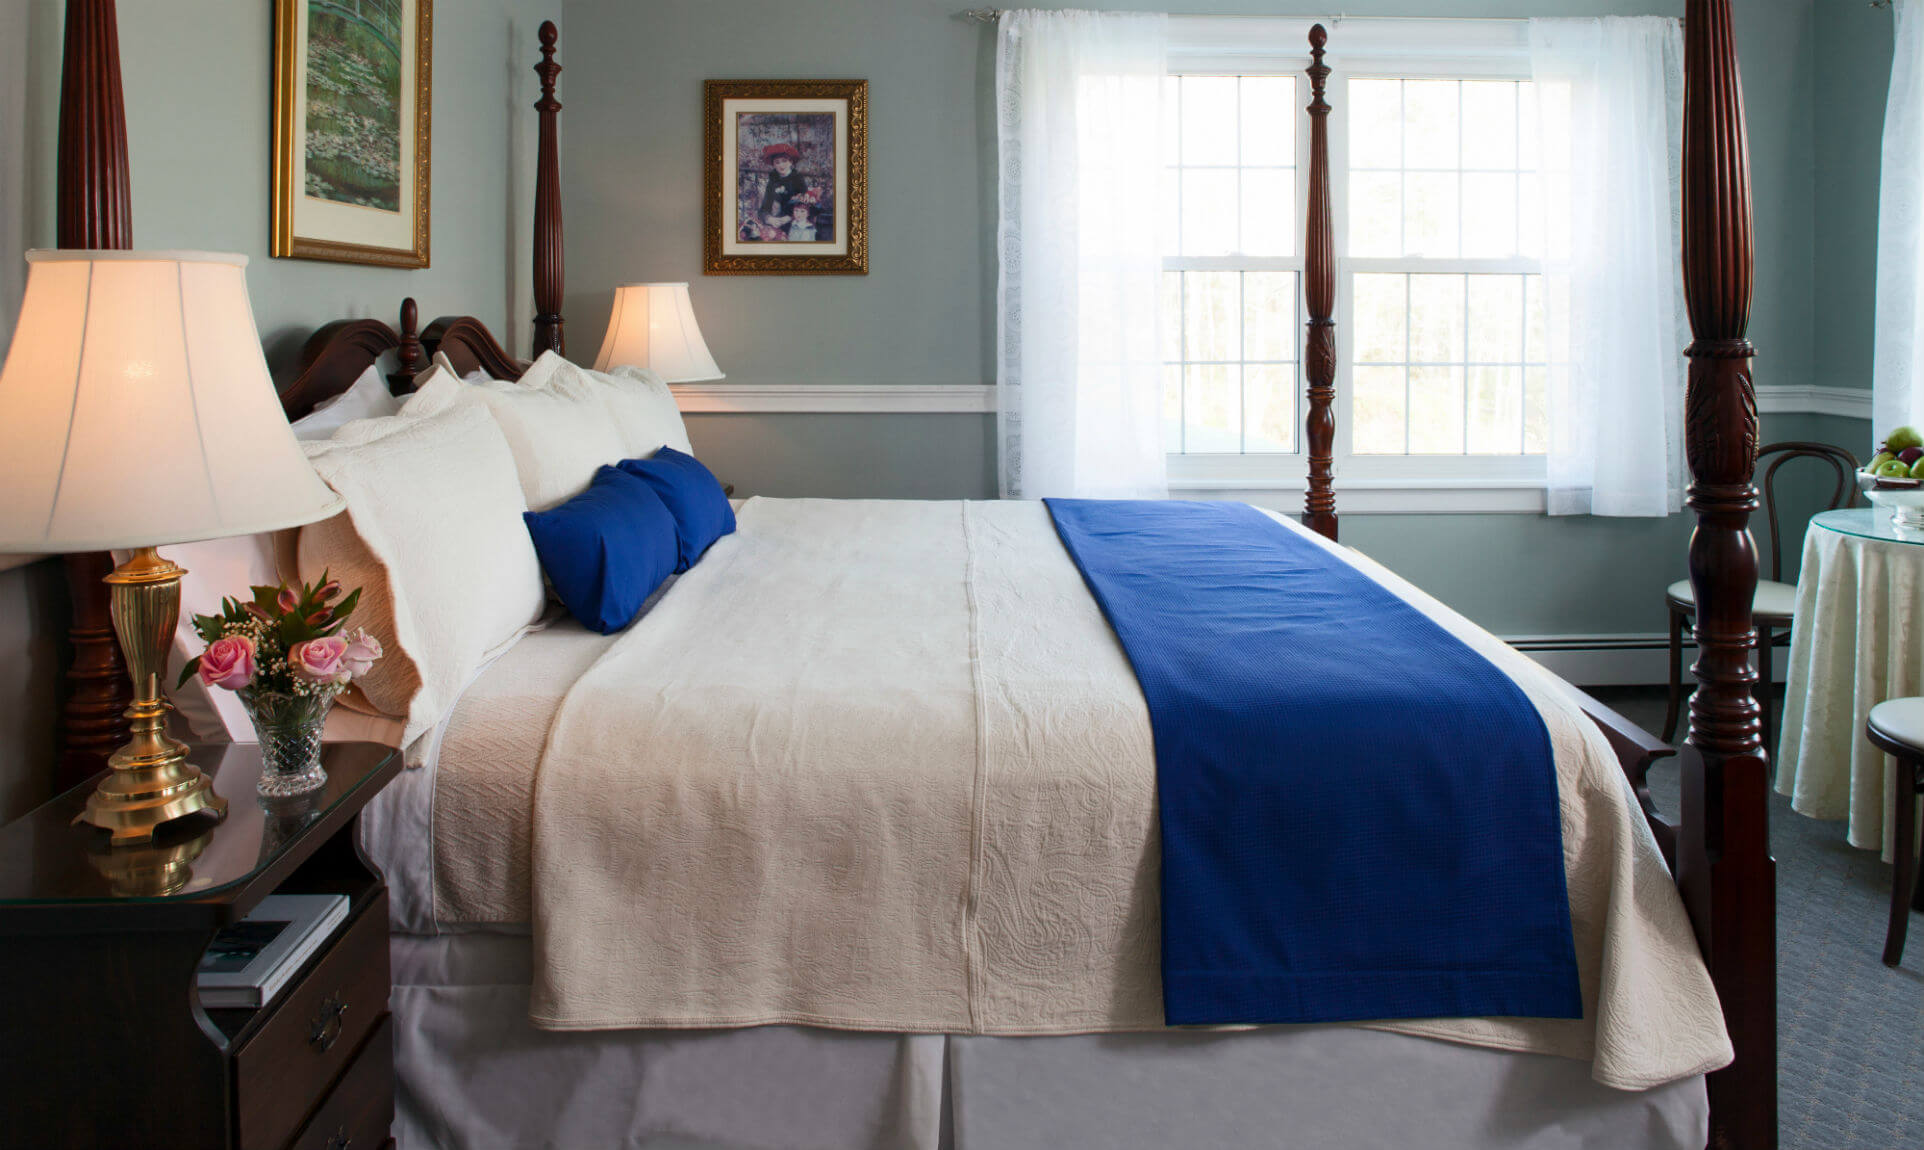 Soft antique bed with white sheets and pillows and blue accents